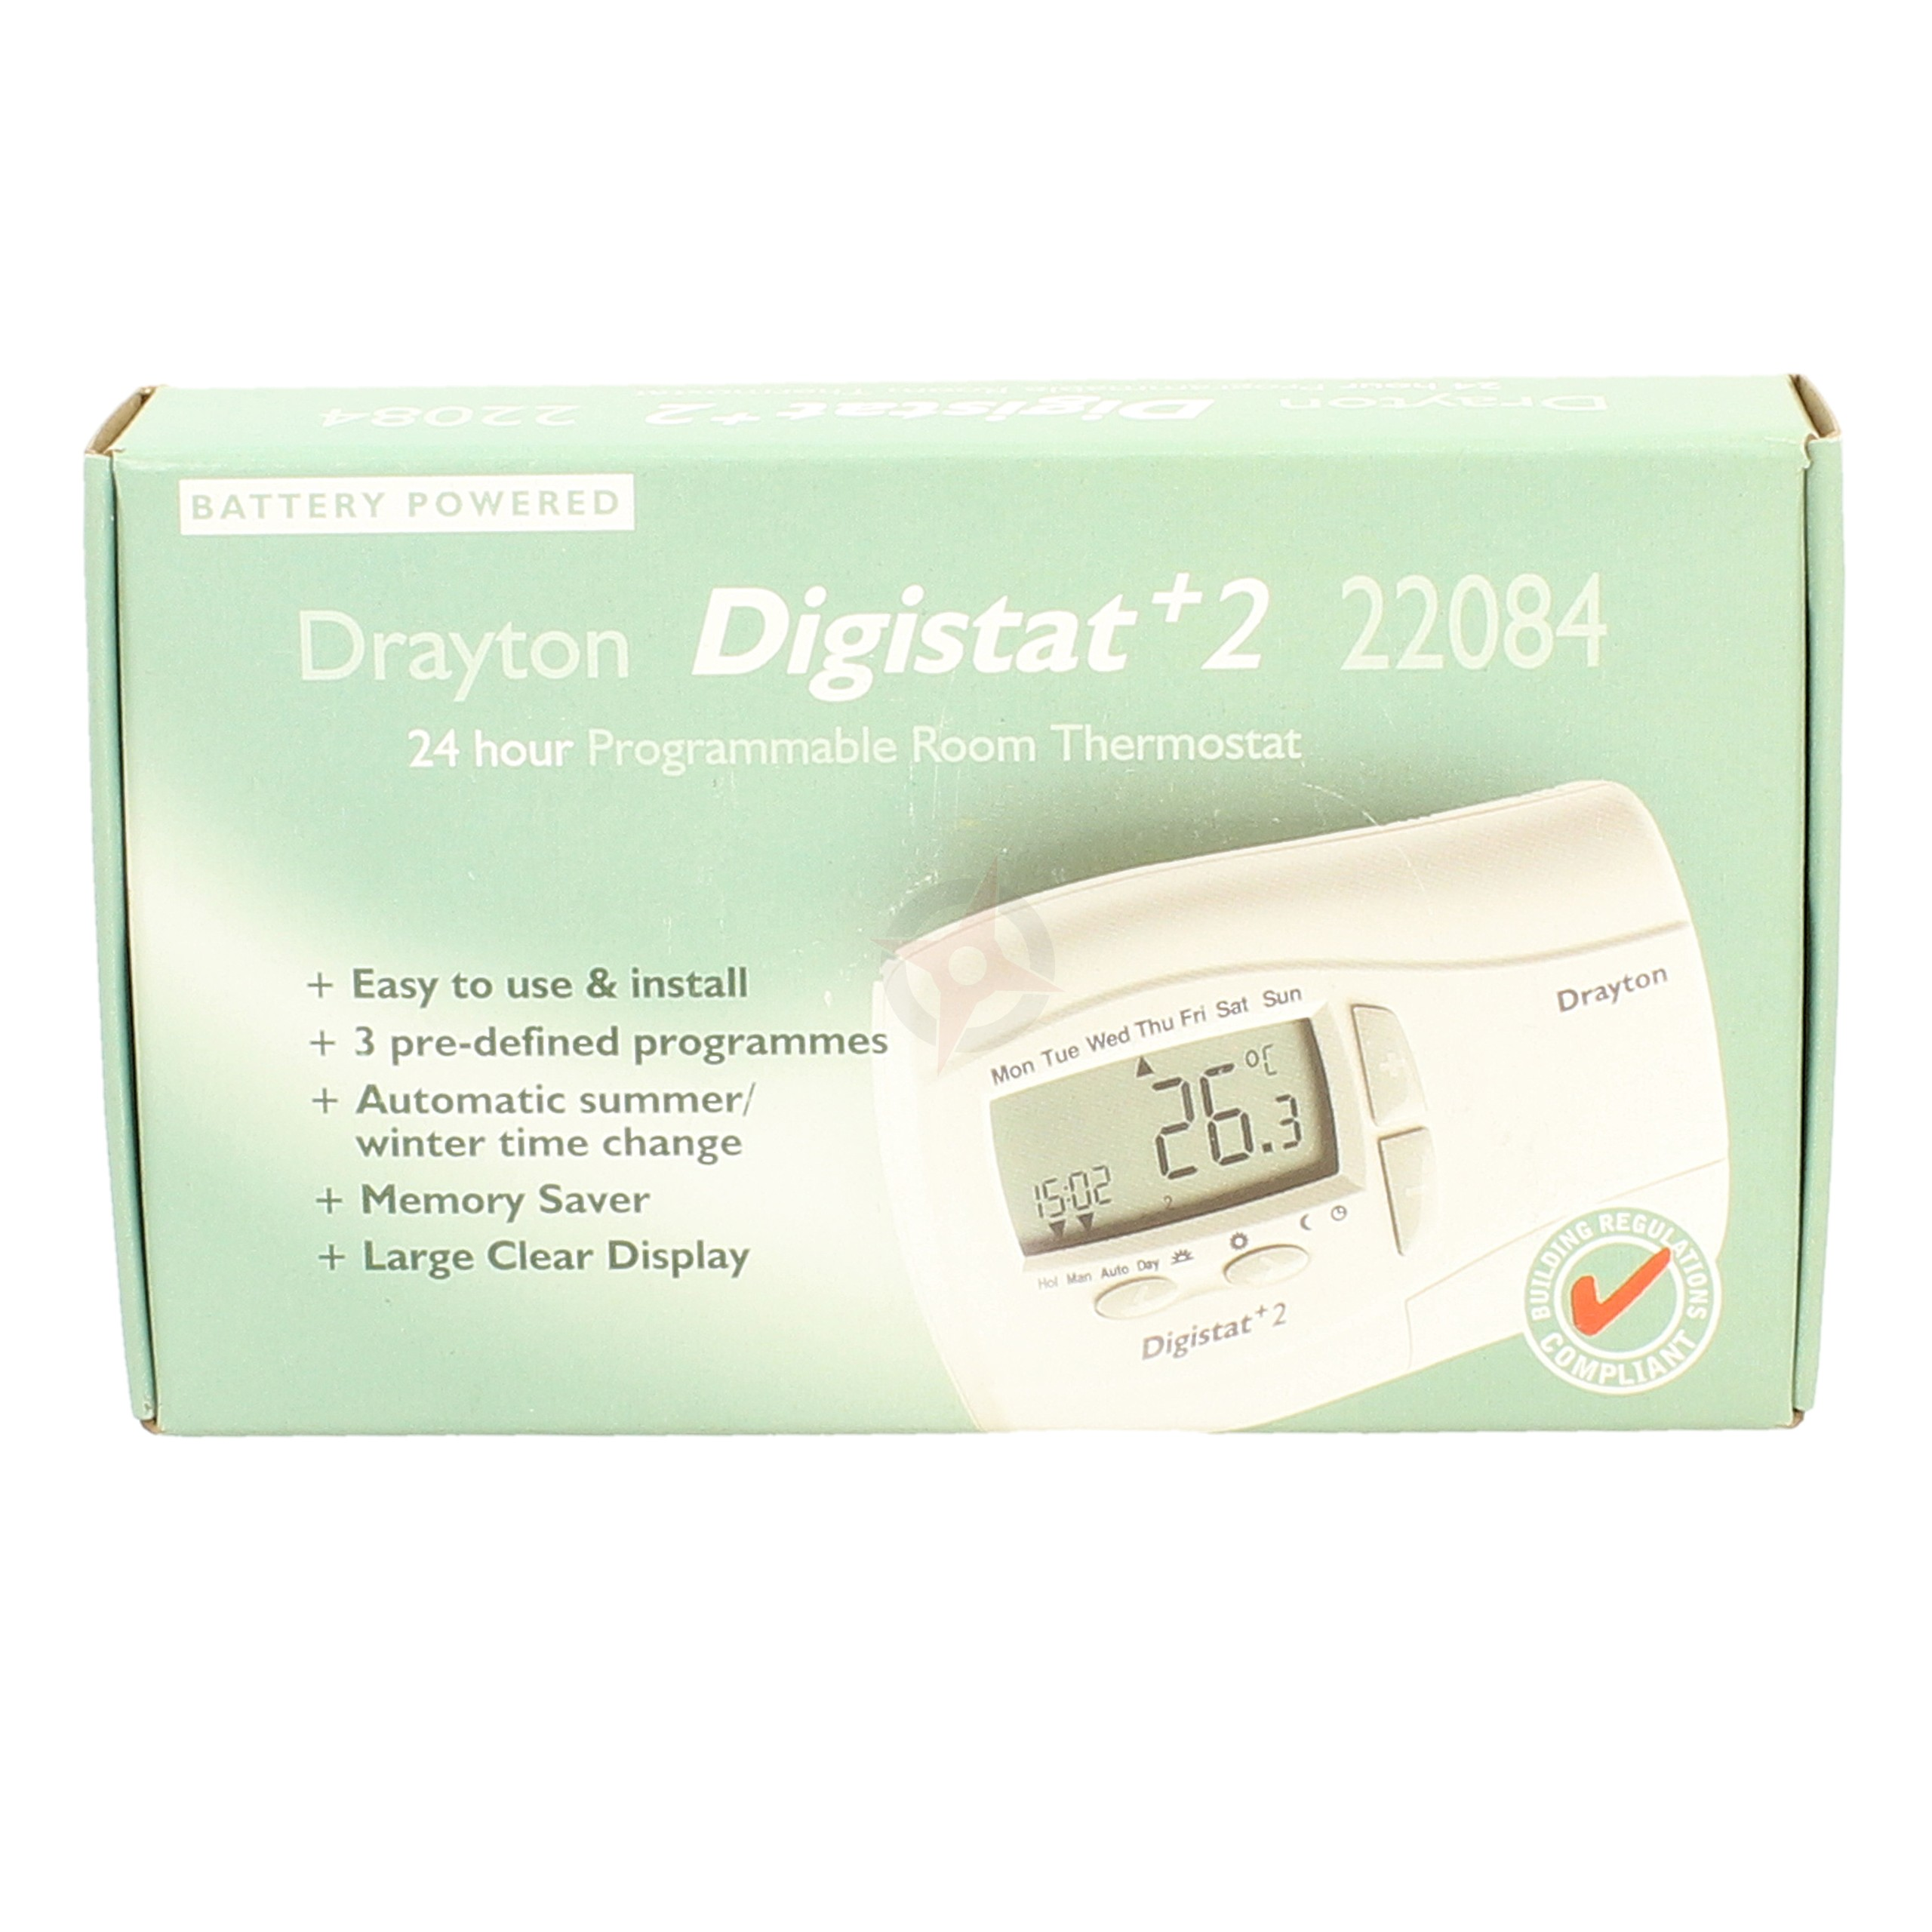 Drayton 24 Hour Programmable Room Stat Digistat+2